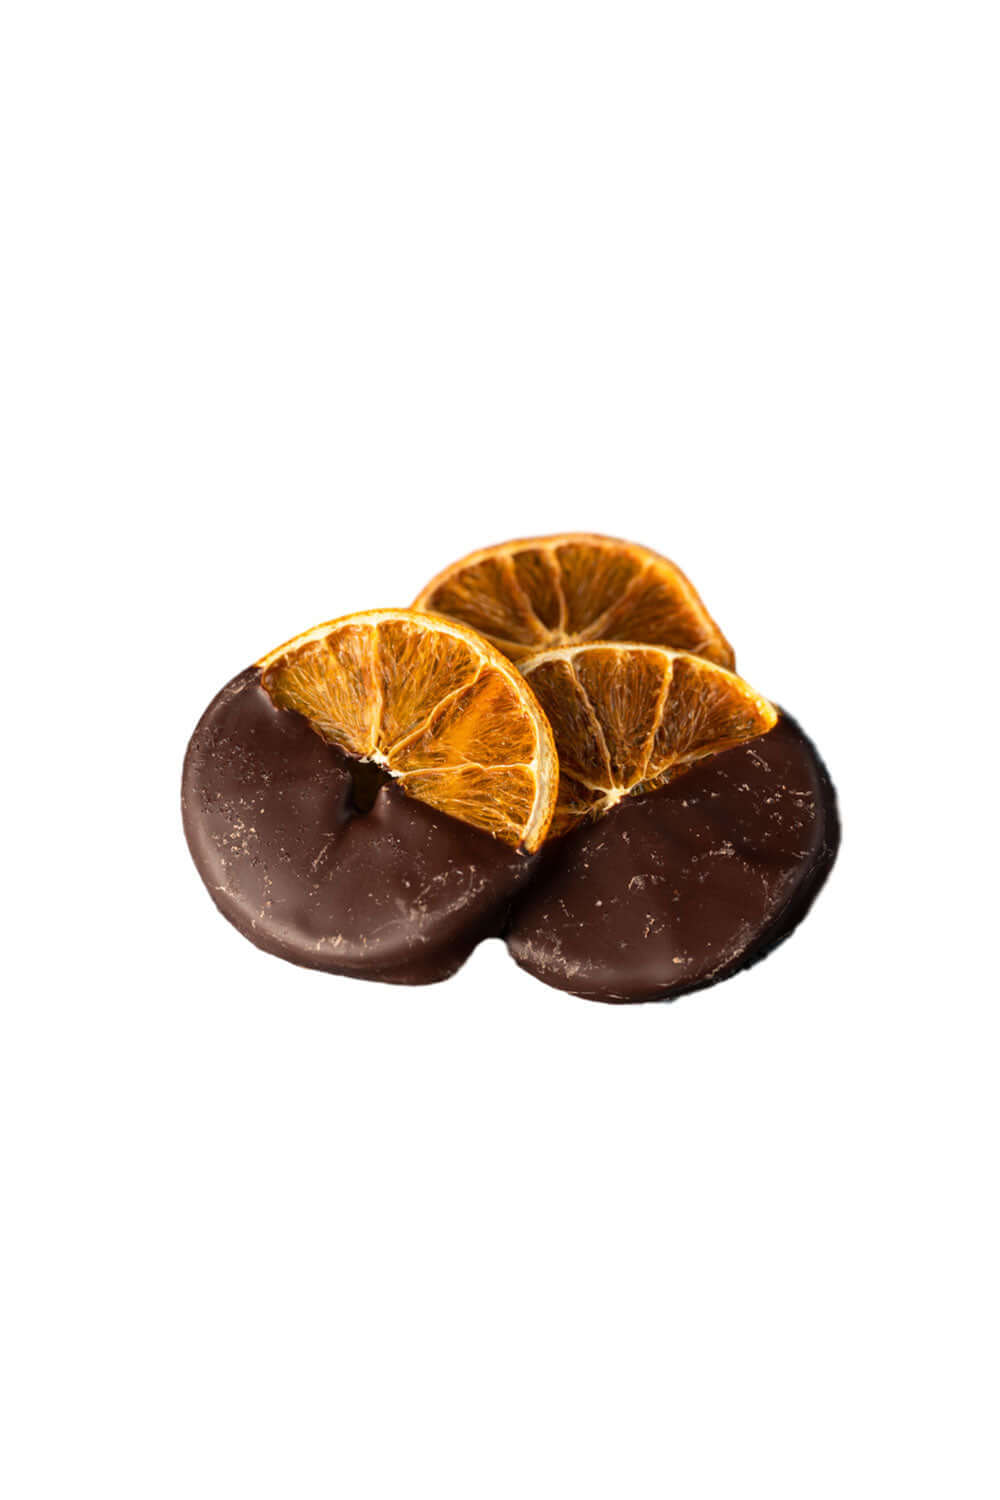 17 Rocks Dark Choc Dipped Oranges 100g - Kabana Shop